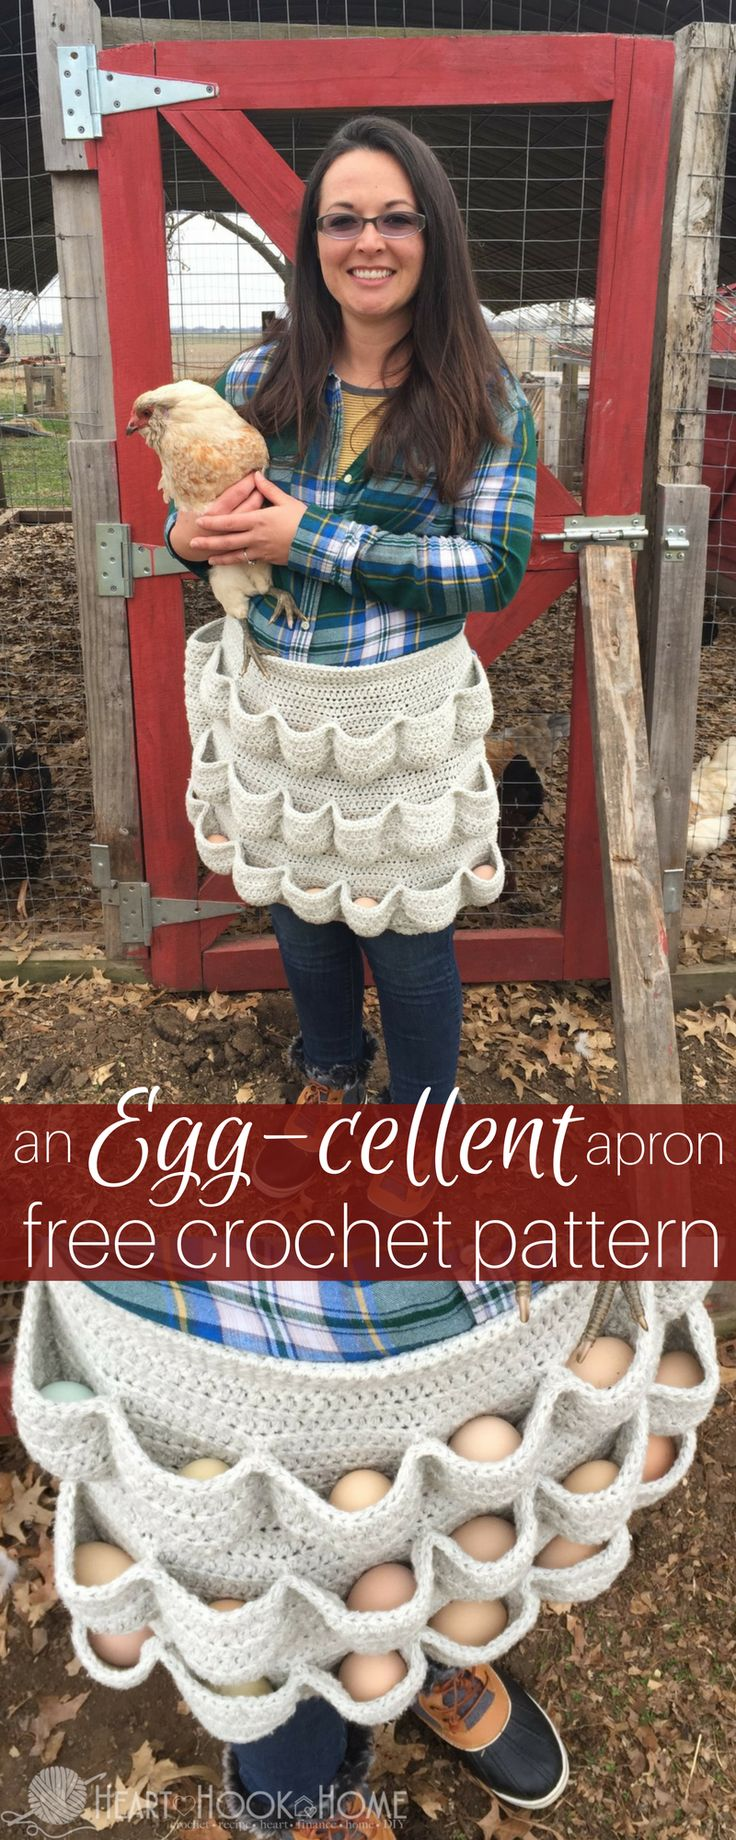 An Egg-cellent Apron: Free Crochet Pattern http://hearthookhome.com/an-egg-cellent-apron-free-egg-gathering-apron-crochet-pattern/?utm_campaign=coschedule&utm_source=pinterest&utm_medium=Ashlea%20K%20-%20Heart%2C%20Hook%2C%20Home&utm_content=An%20Egg-cellent%20Apron%3A%20Free%20Egg%20Gathering%20Apron%20Crochet%20Pattern